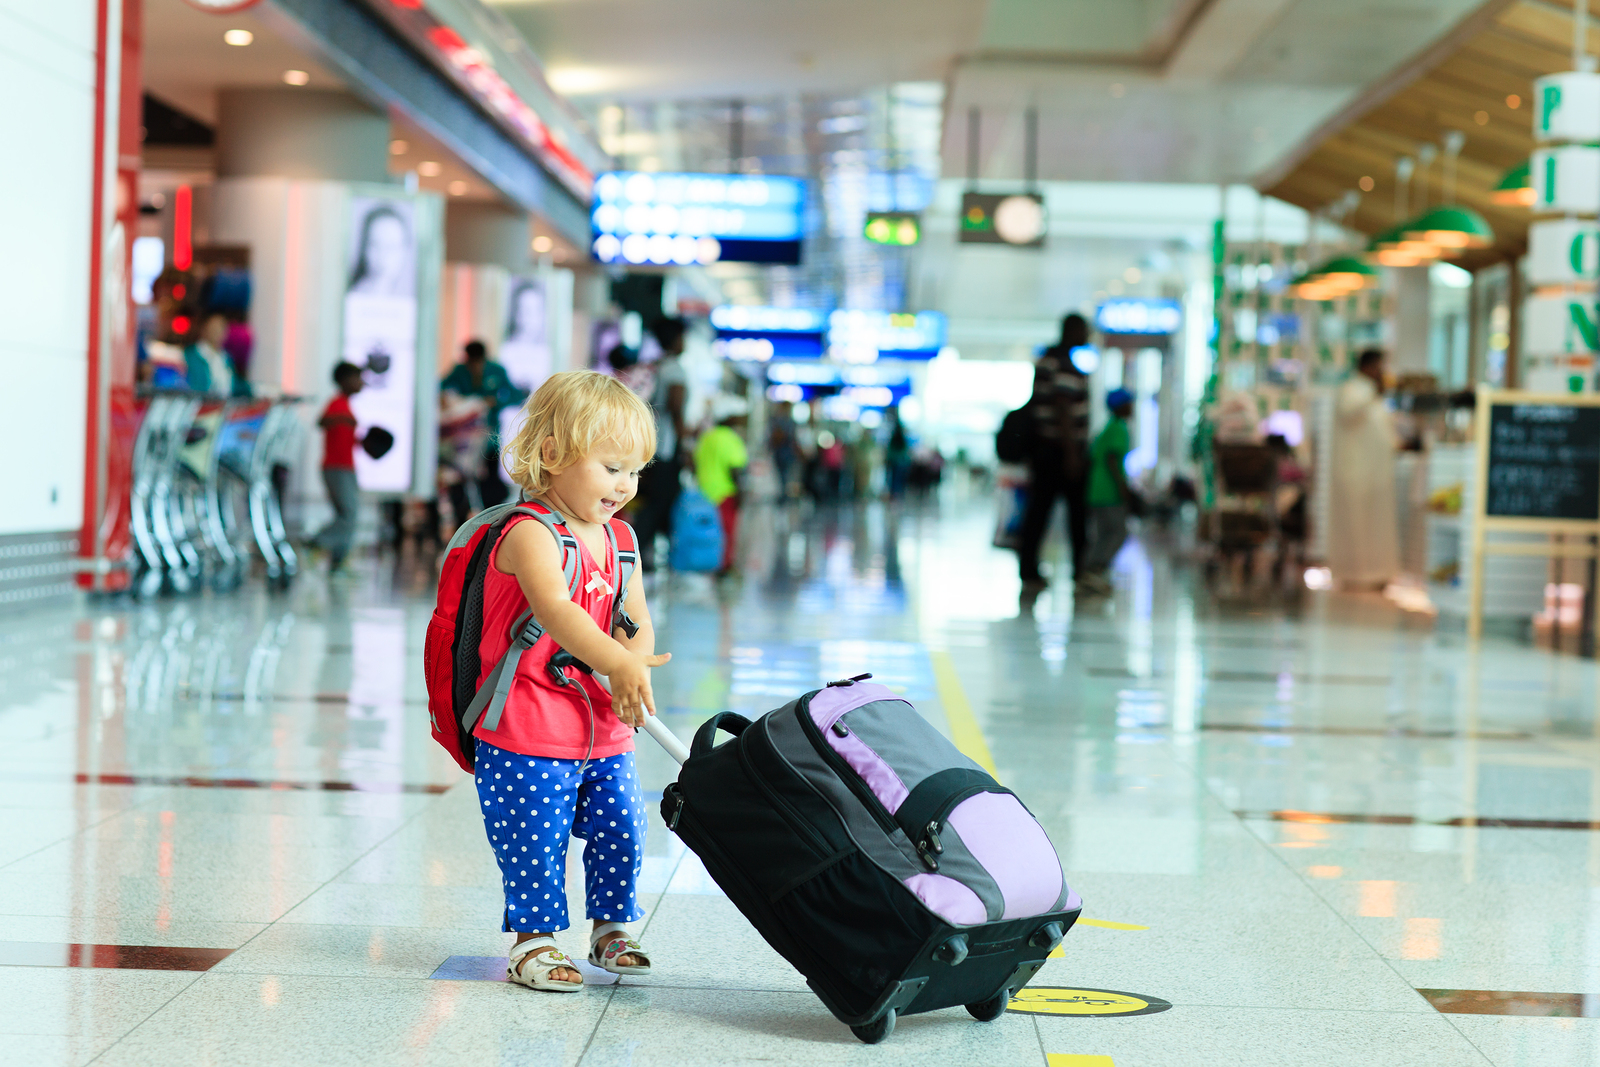 Traveling with children provides opportunity for creativity, story telling, and fresh learning experiences.